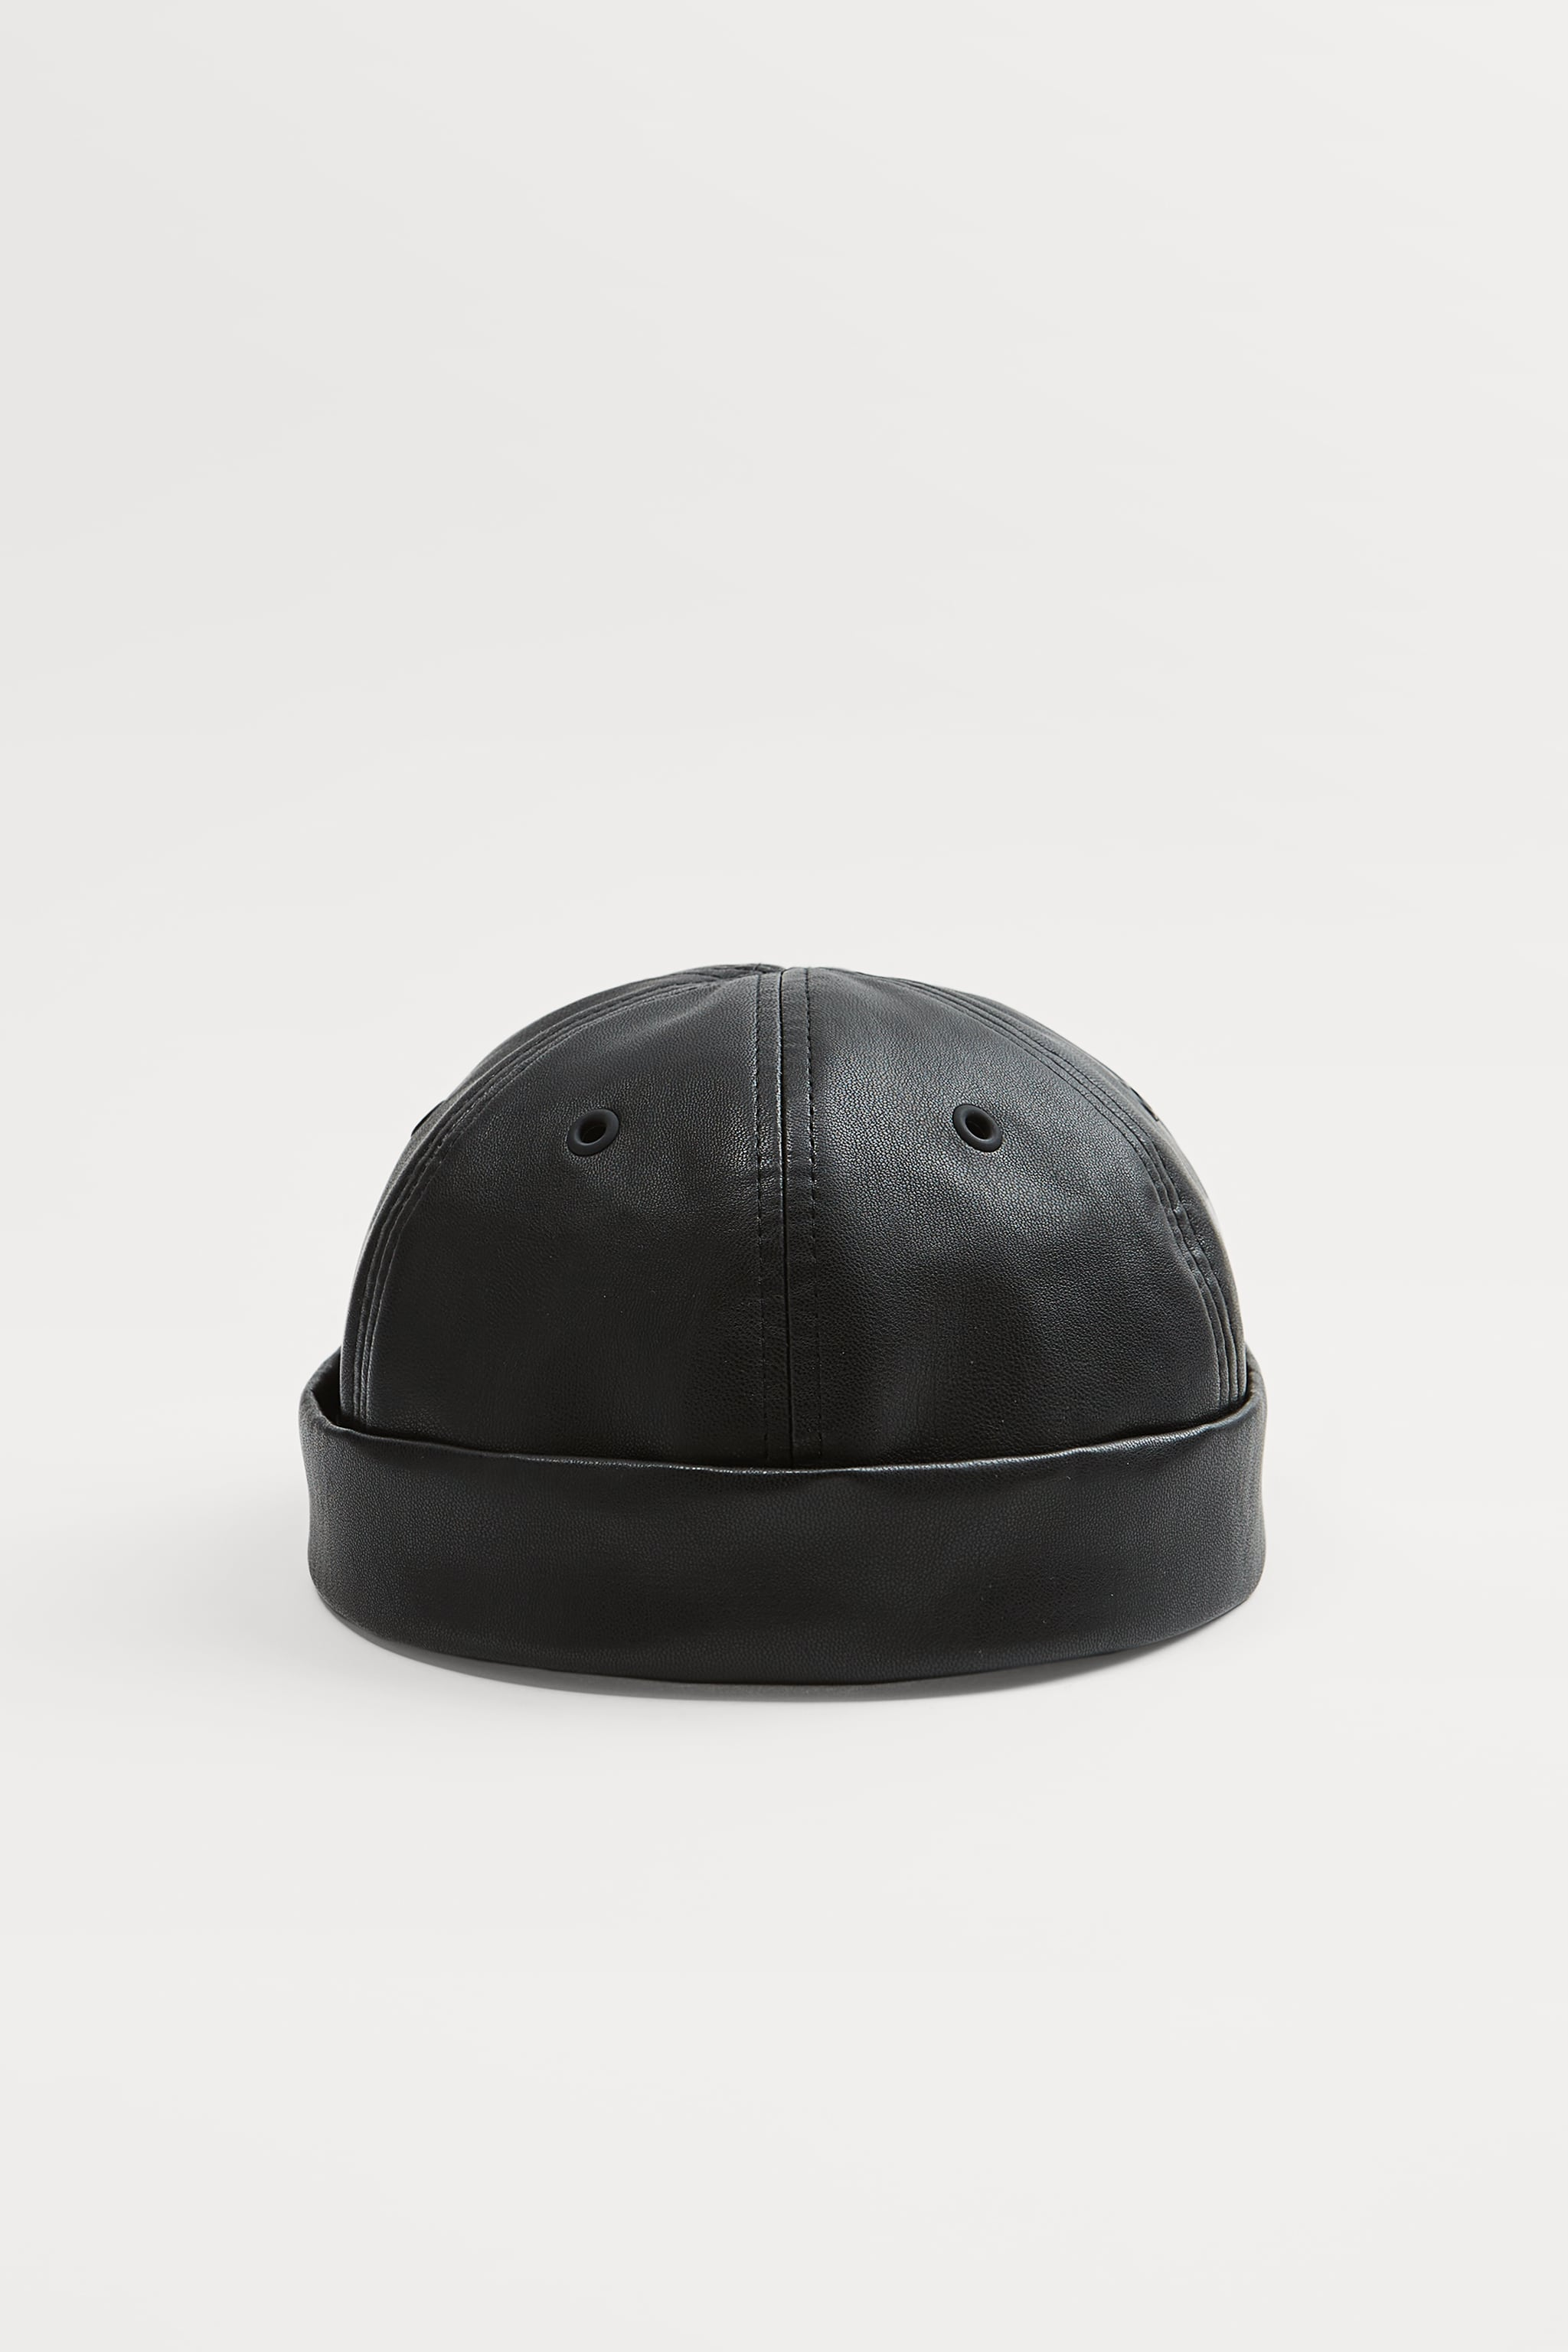 Zara FAUX LEATHER SHORT HAT